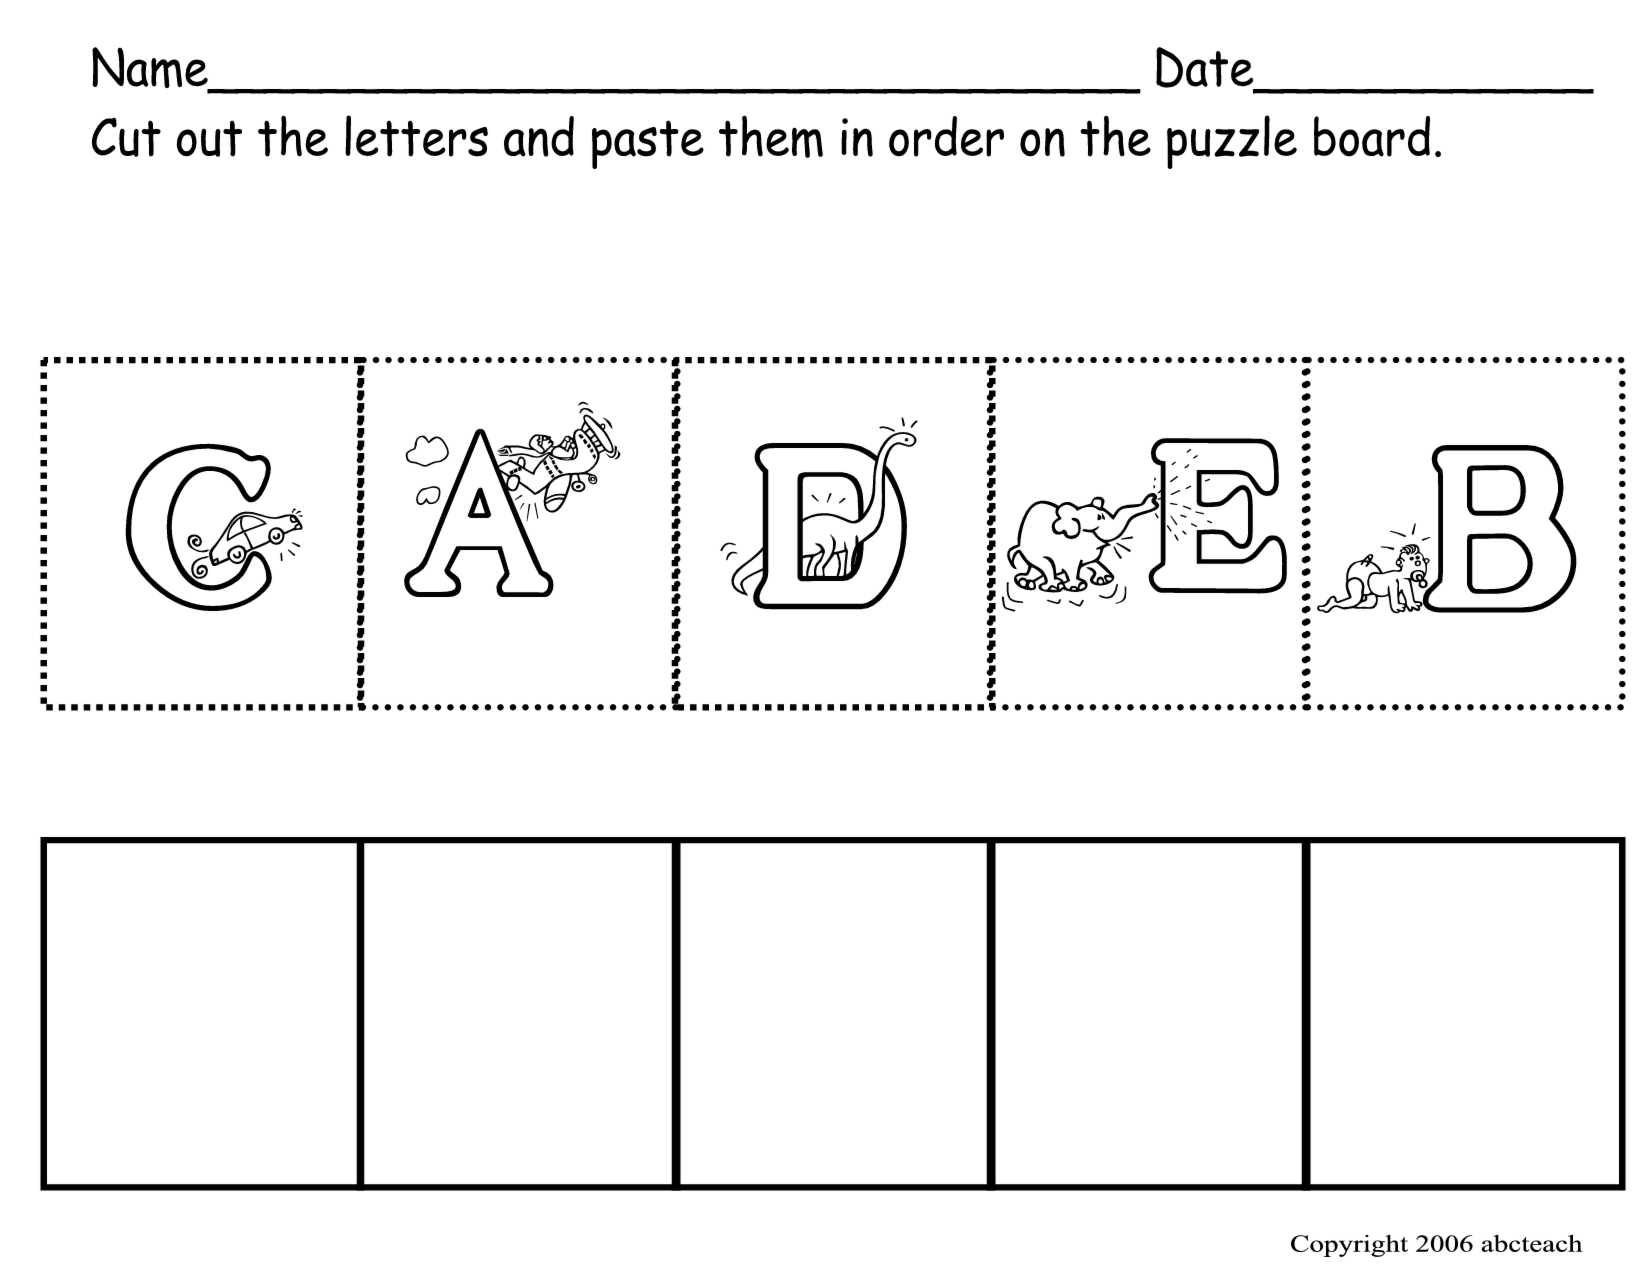 Preschool Abc Worksheets Printables In 2020 | Abc Worksheets